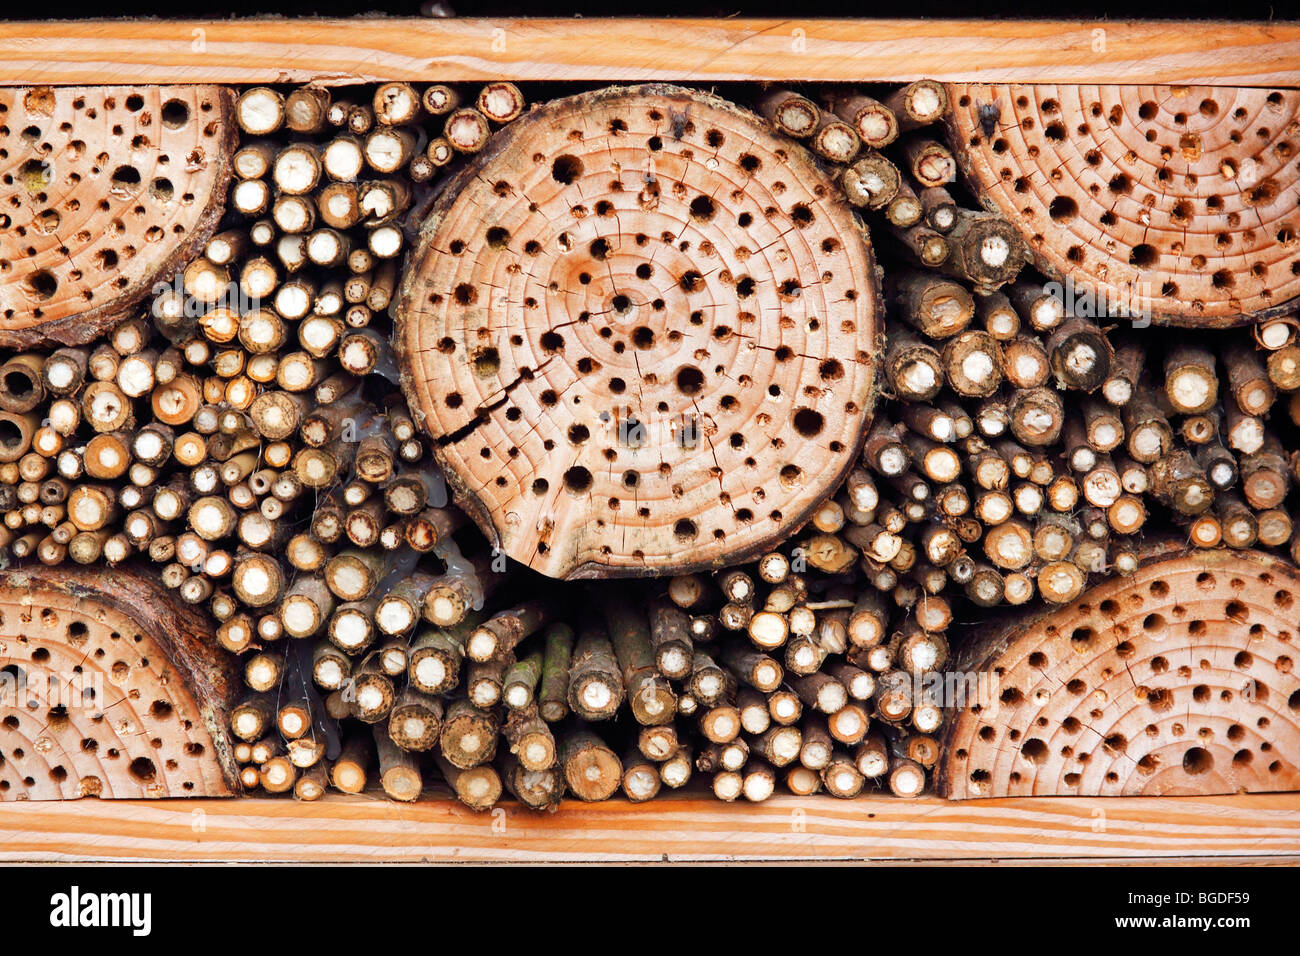 Artificial nest box for wild bees and other insects with wood and elderberry stems, wild bees-nest boxes, insect - Stock Image